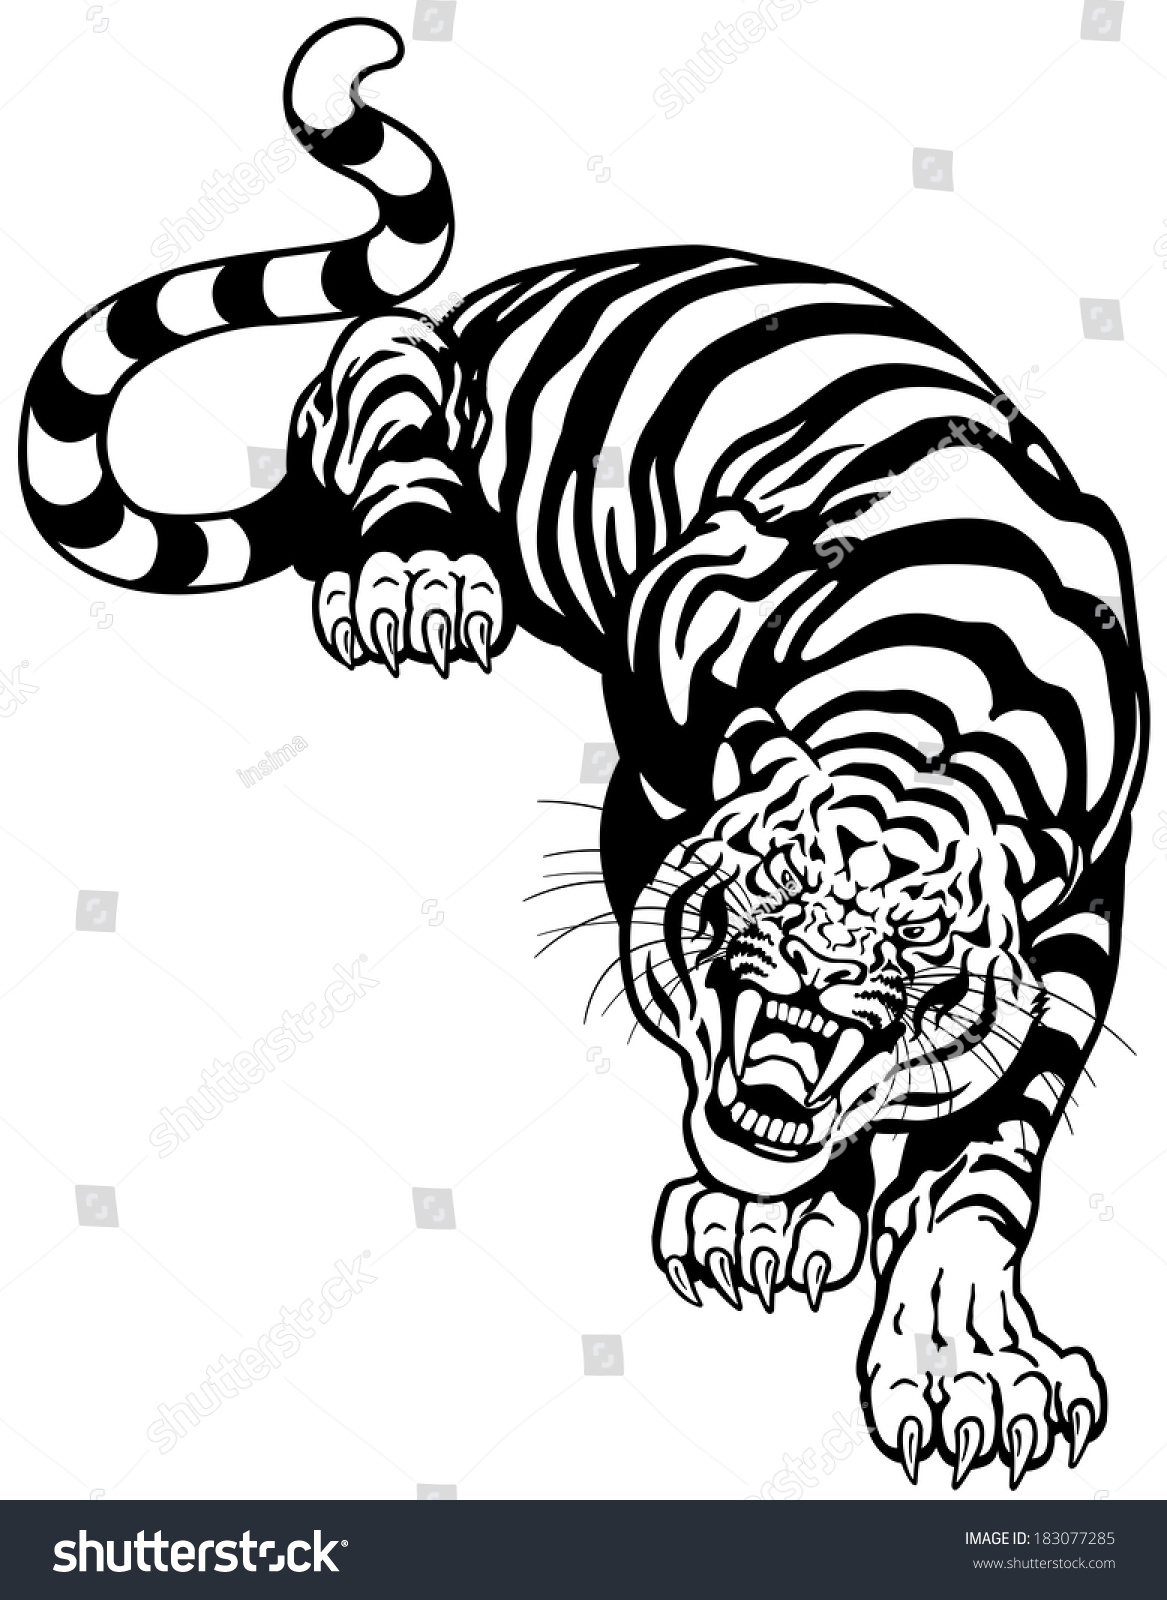 Angry Tiger Black White Tattoo Illustration Stock Vector ...